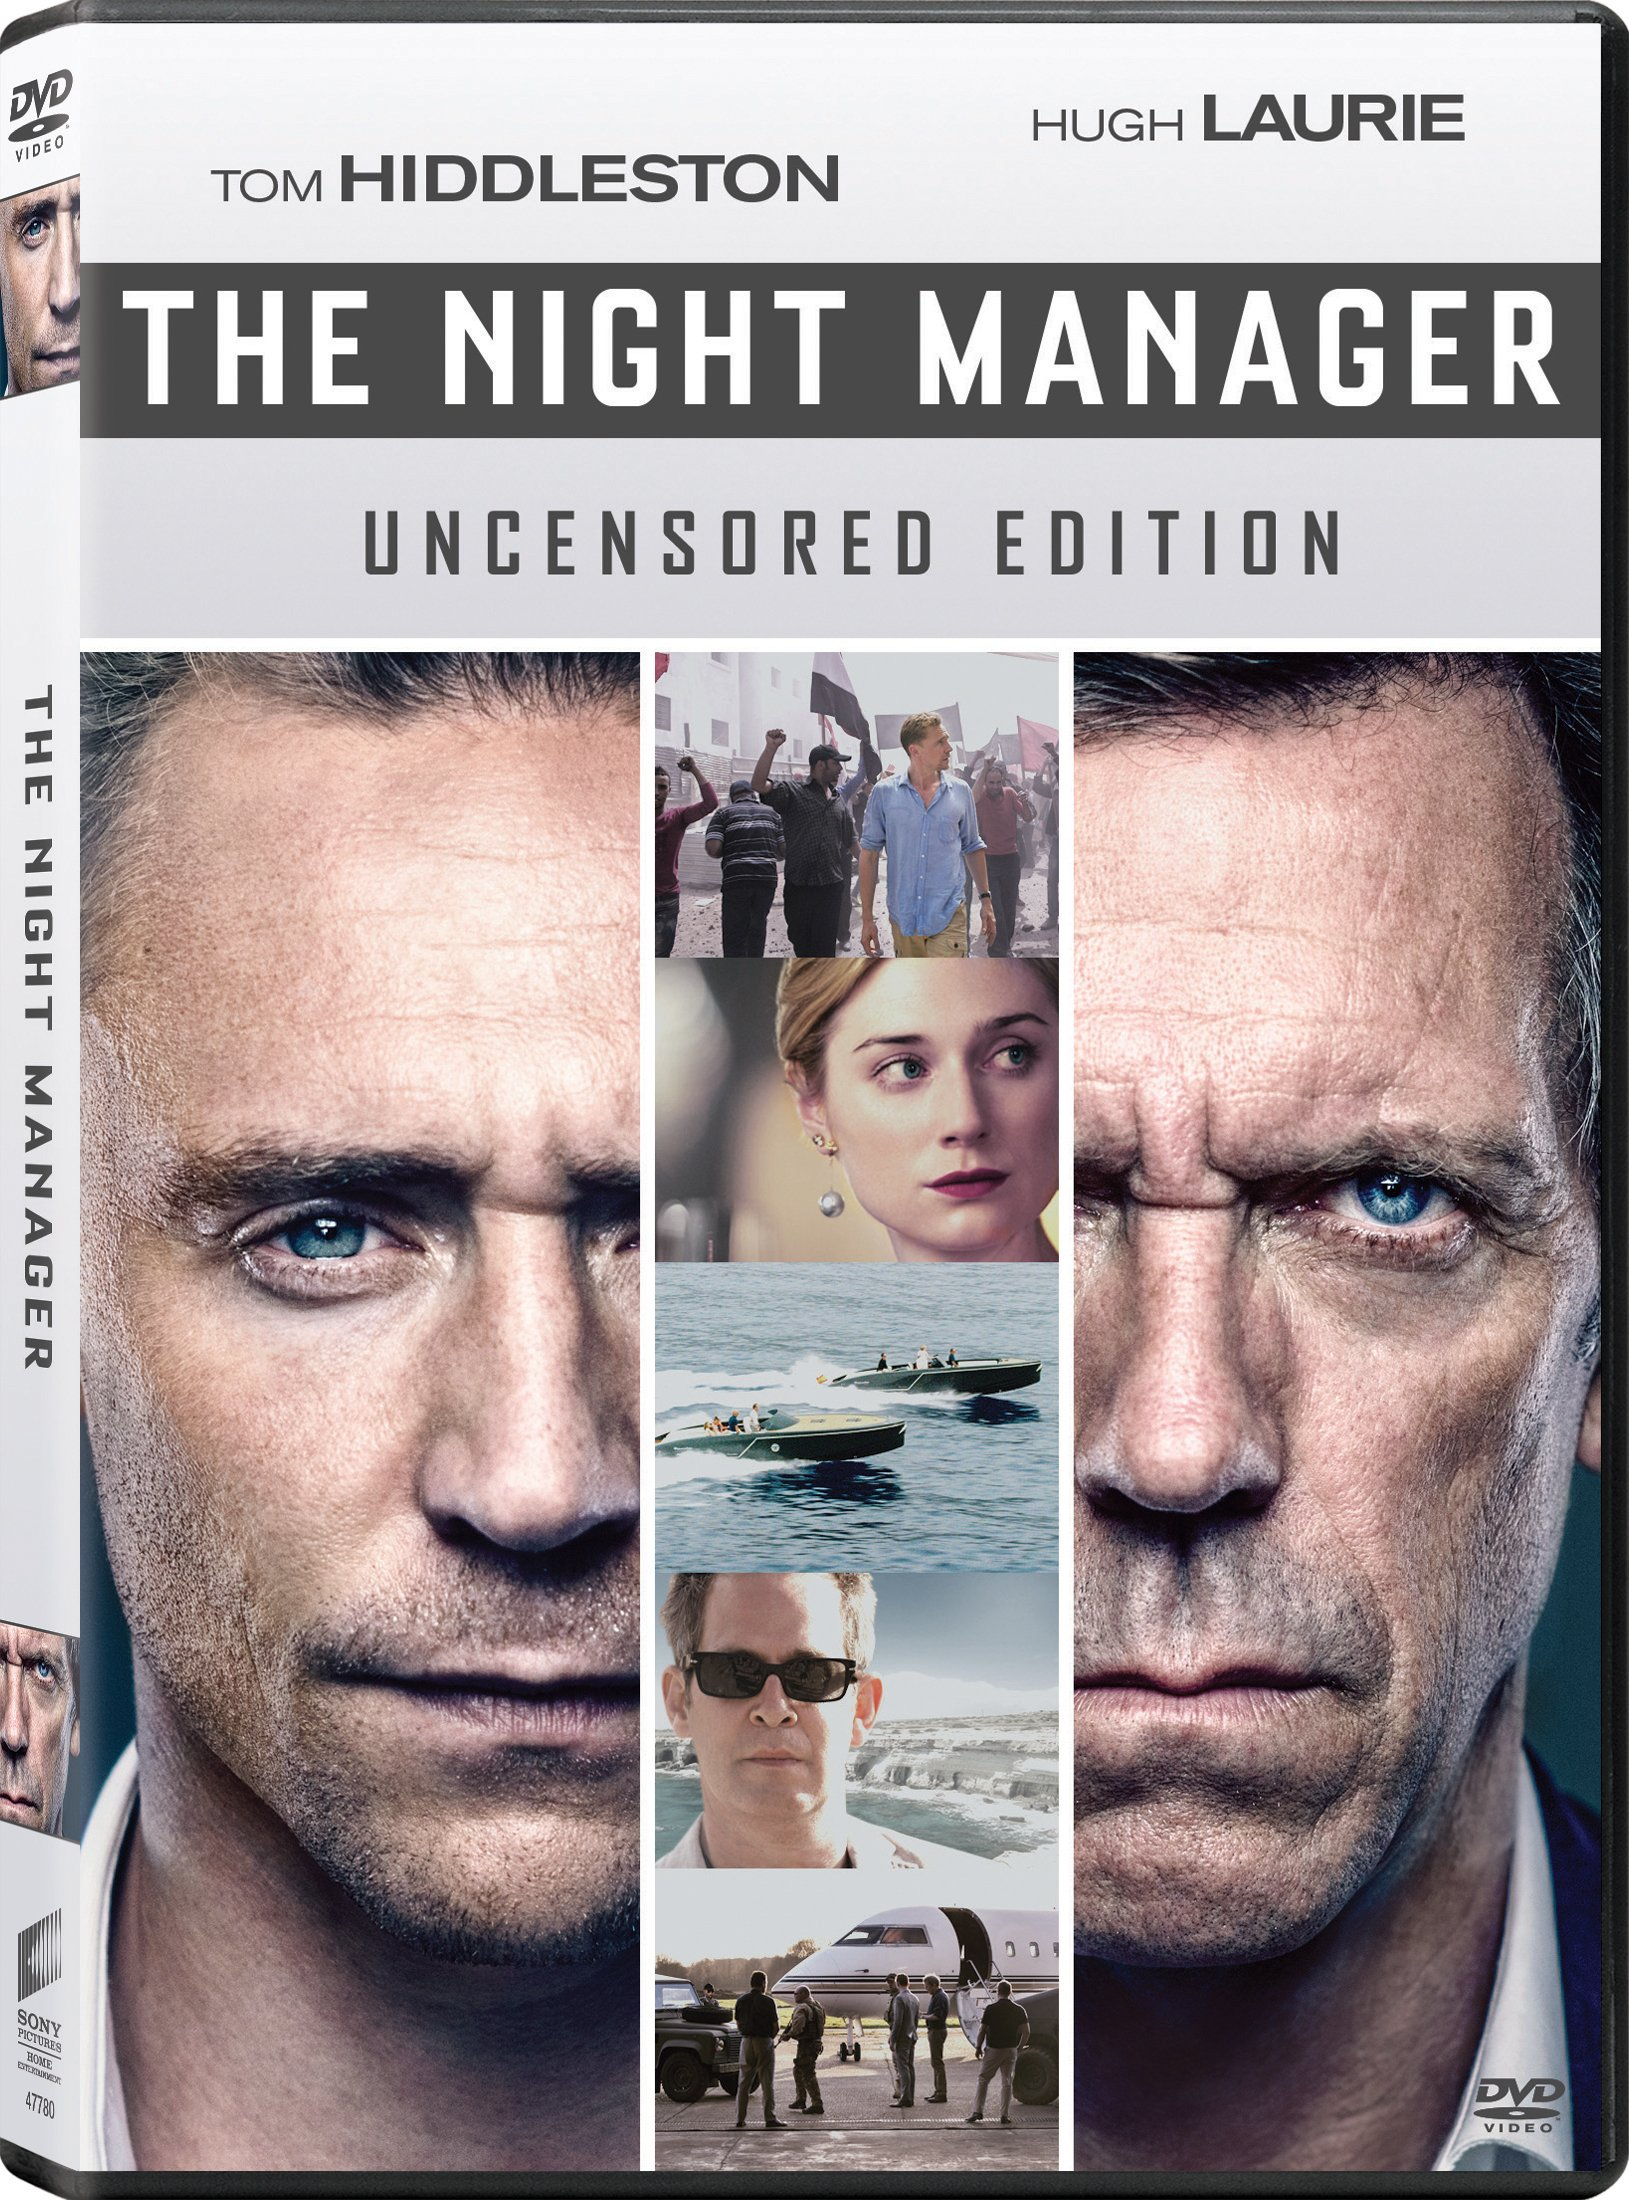 DVD : The Night Manager (Uncensored Edition) (2 Pack, 2 Disc)